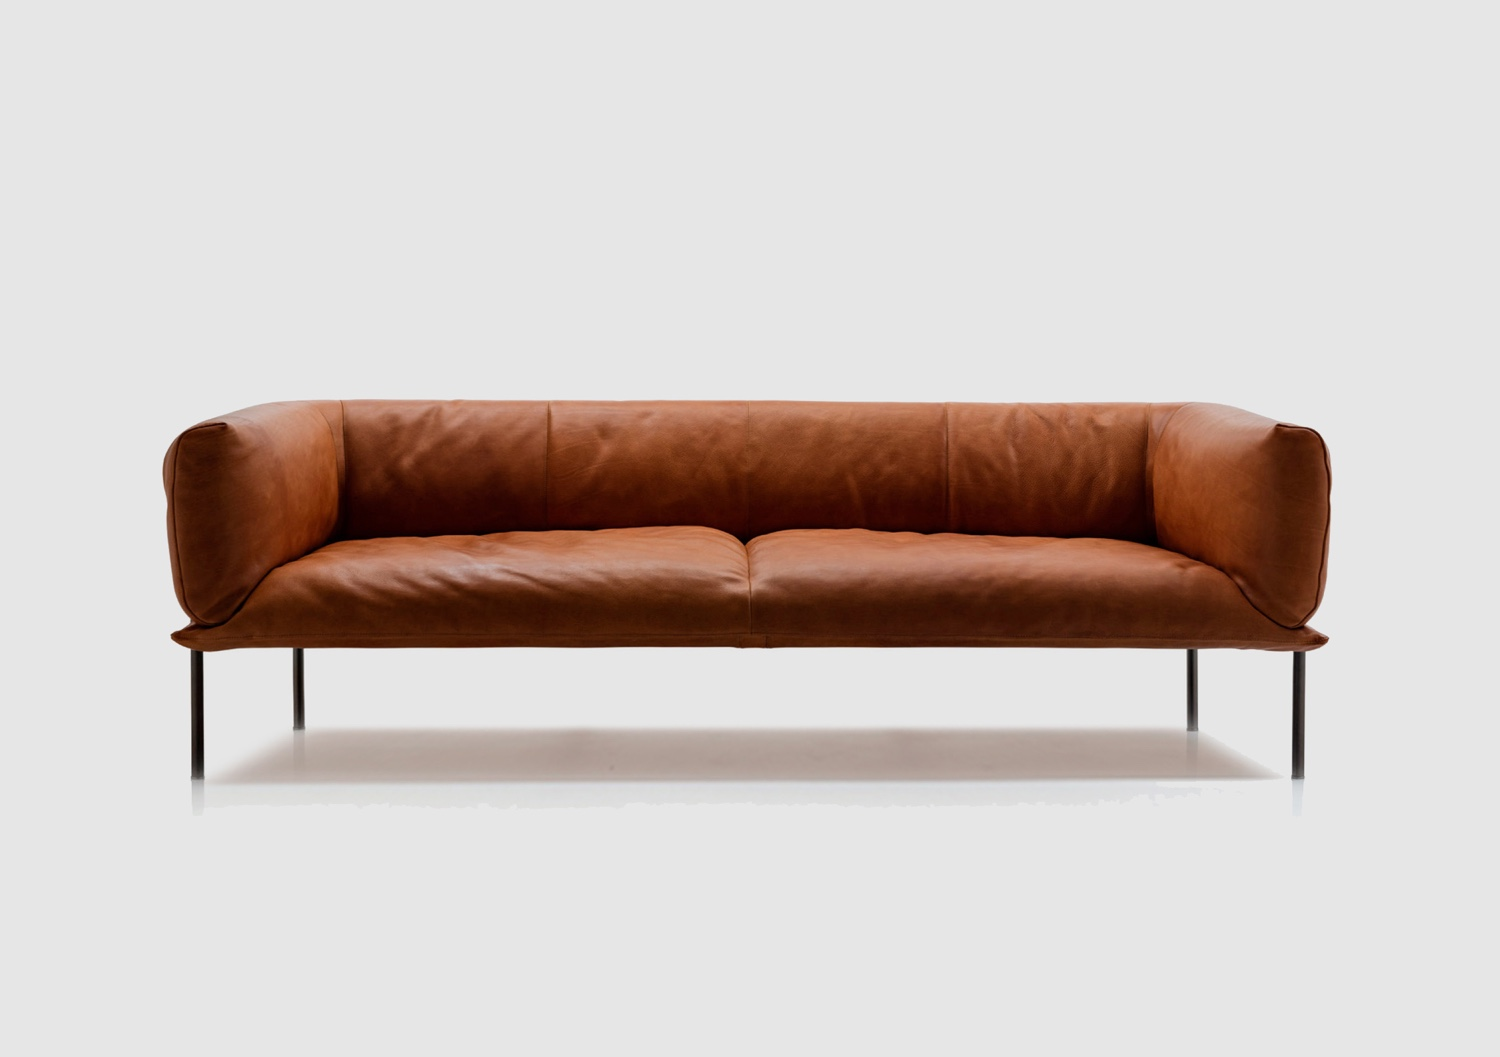 view in gallery rondo sofa bedroomengaging modular sofa system live